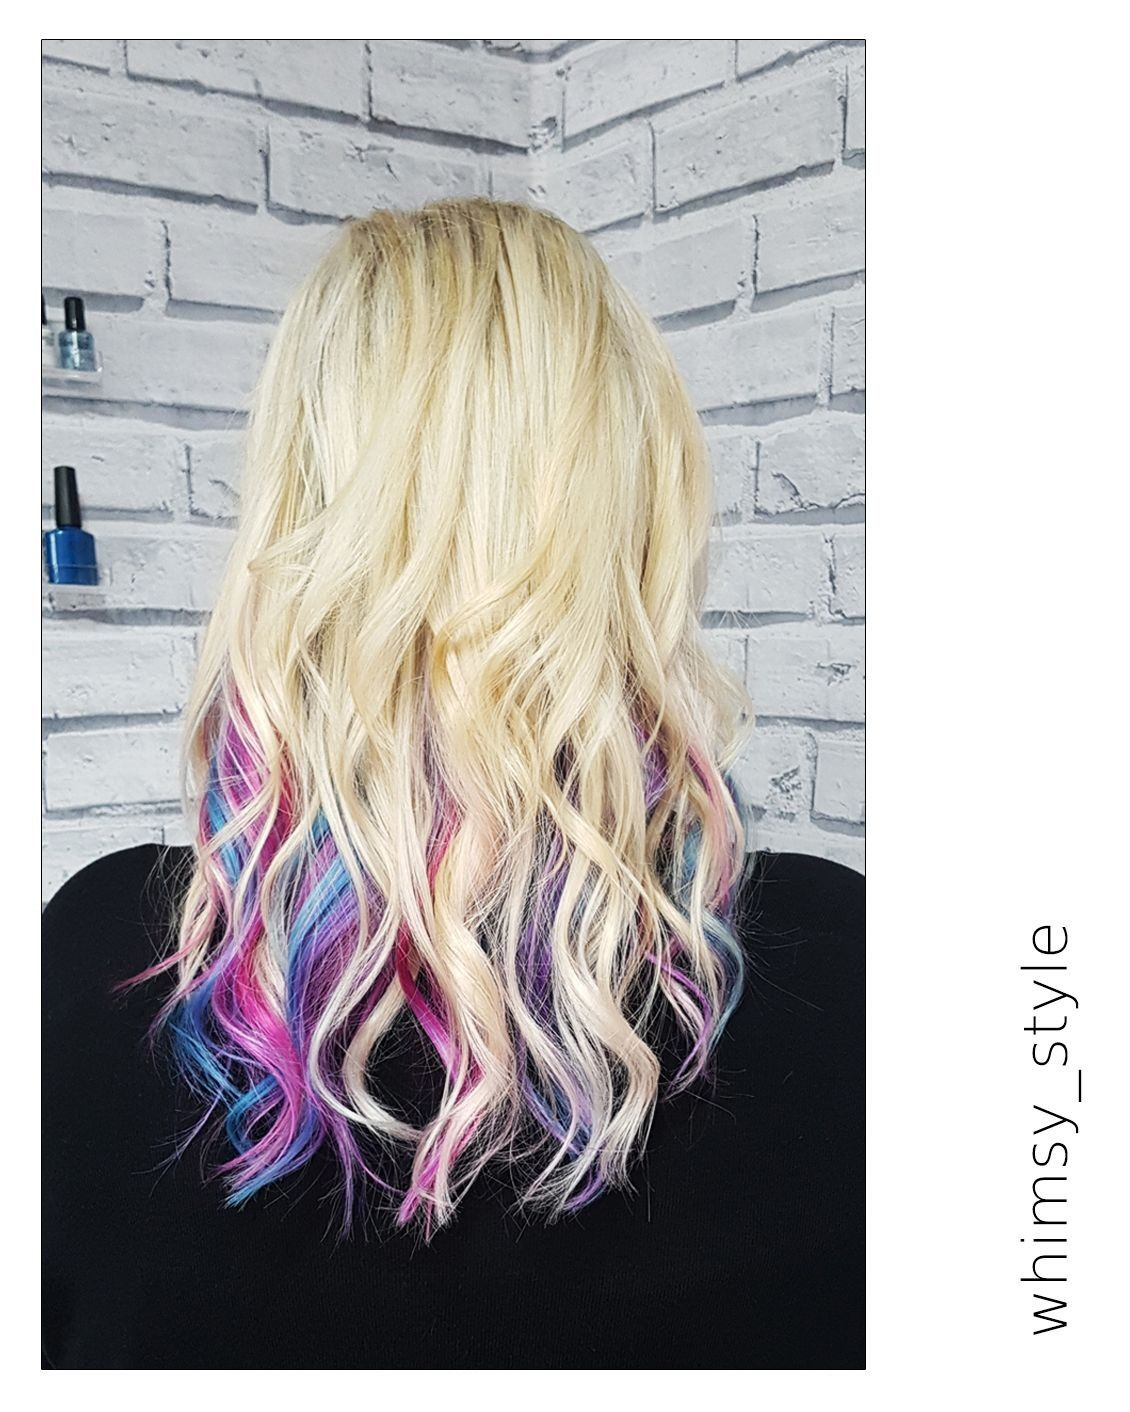 10 Blonde And Pink Hair 608 Blonde And Pink Ombre Hair Pink Blonde Hair Purple Blonde Hair Blonde With Pink